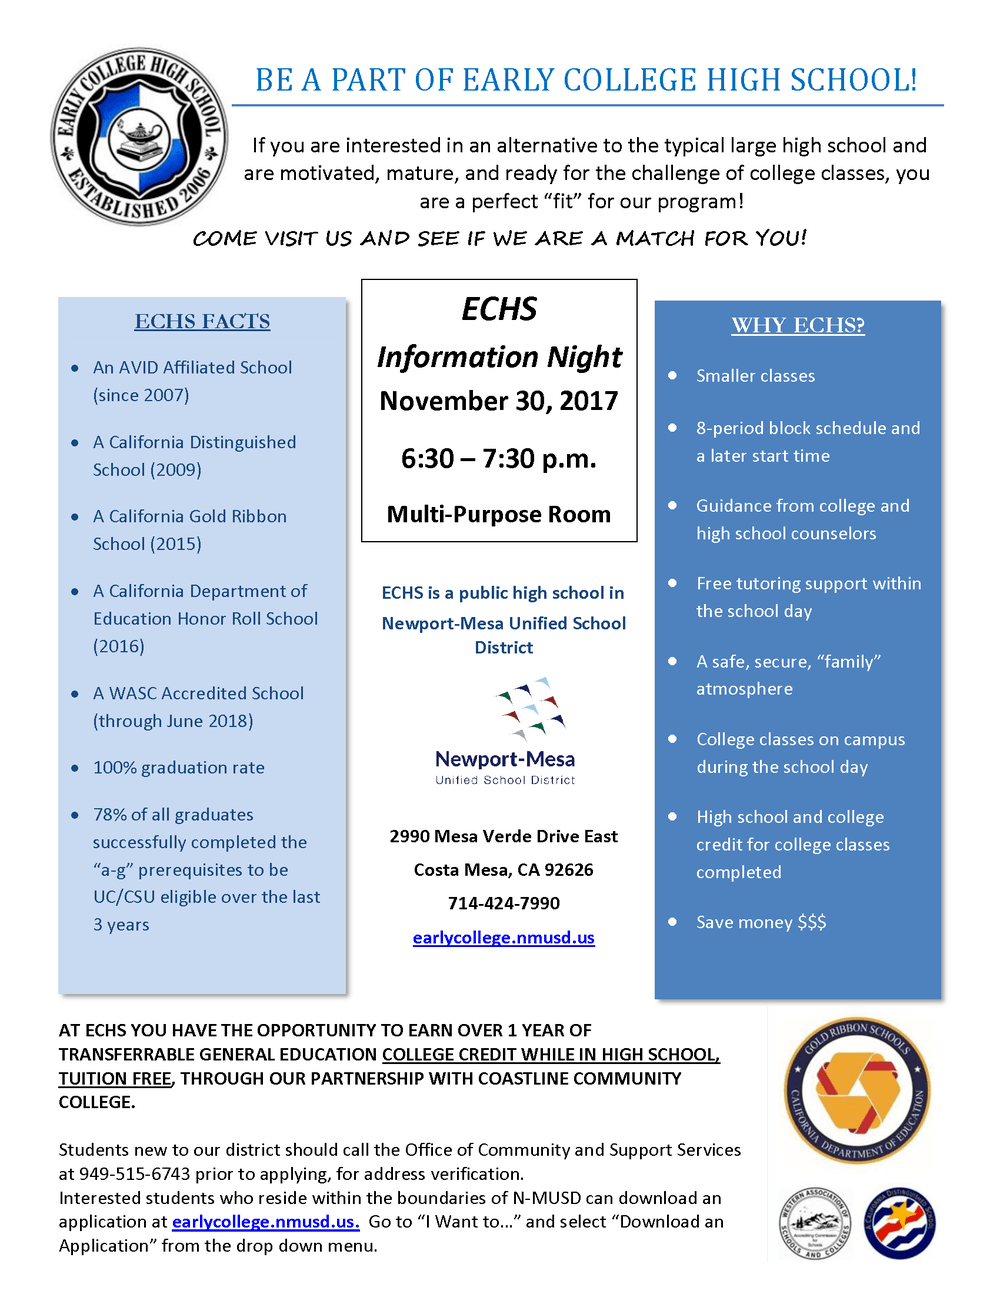 Early College High School Information Night Flyer